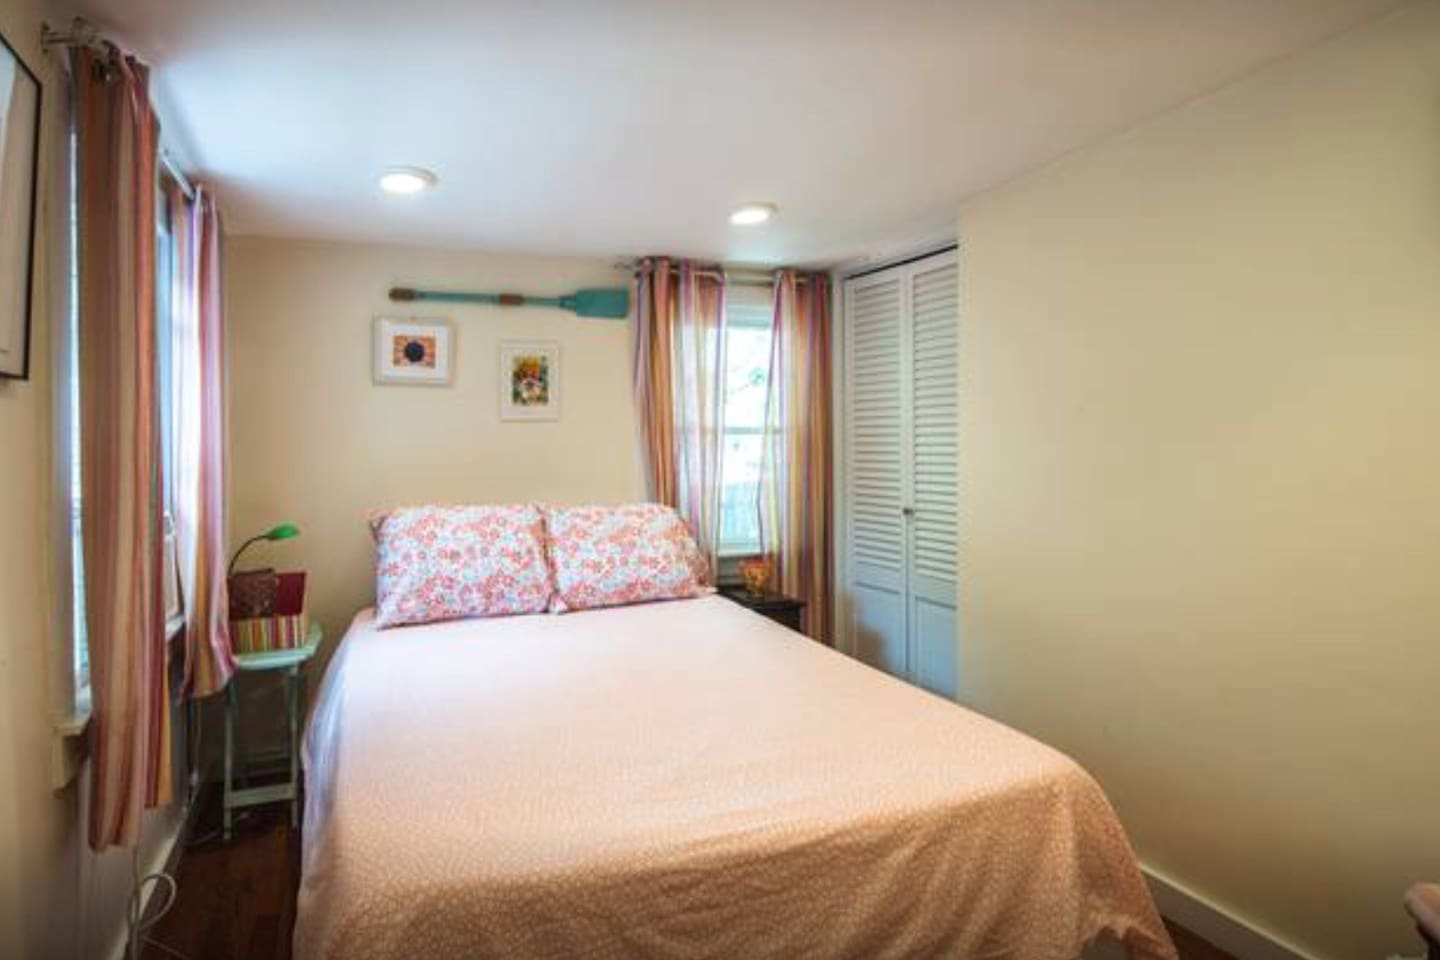 Very Cozy (small) Private bedroom, full size bed, window unit A/C,  2 windows and luggage rack in closet.